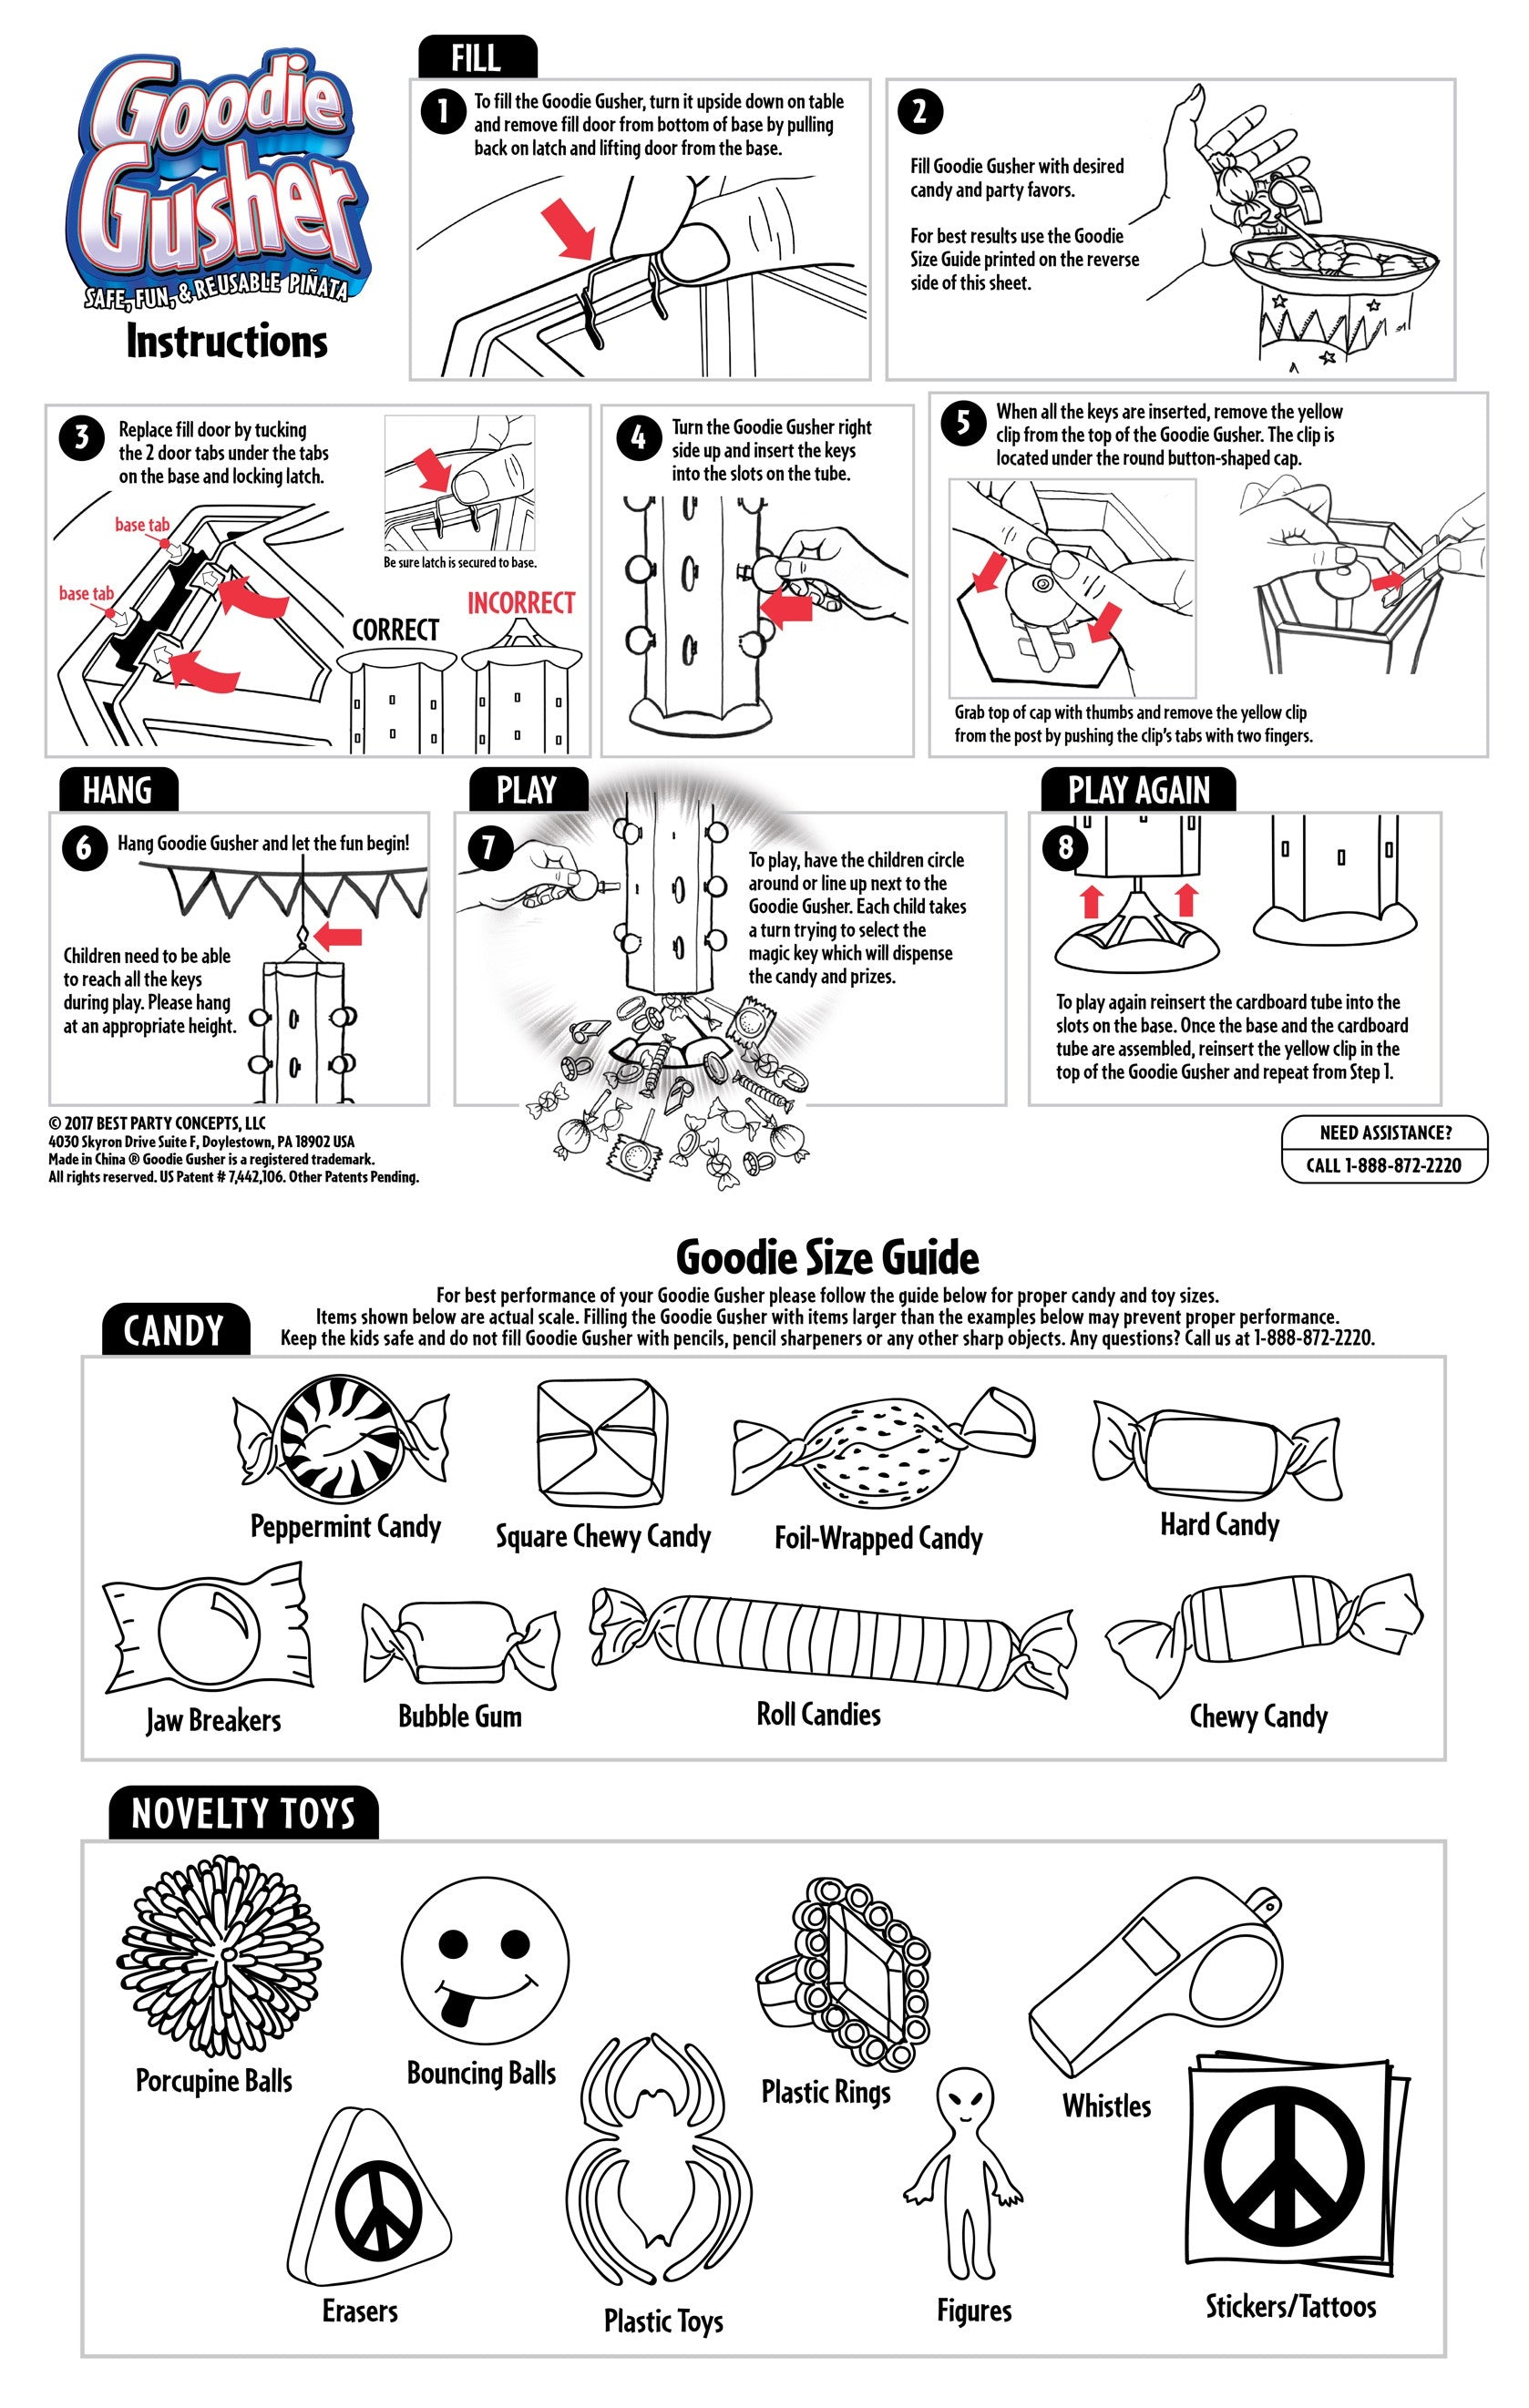 Goodie Gusher Instruction Sheet